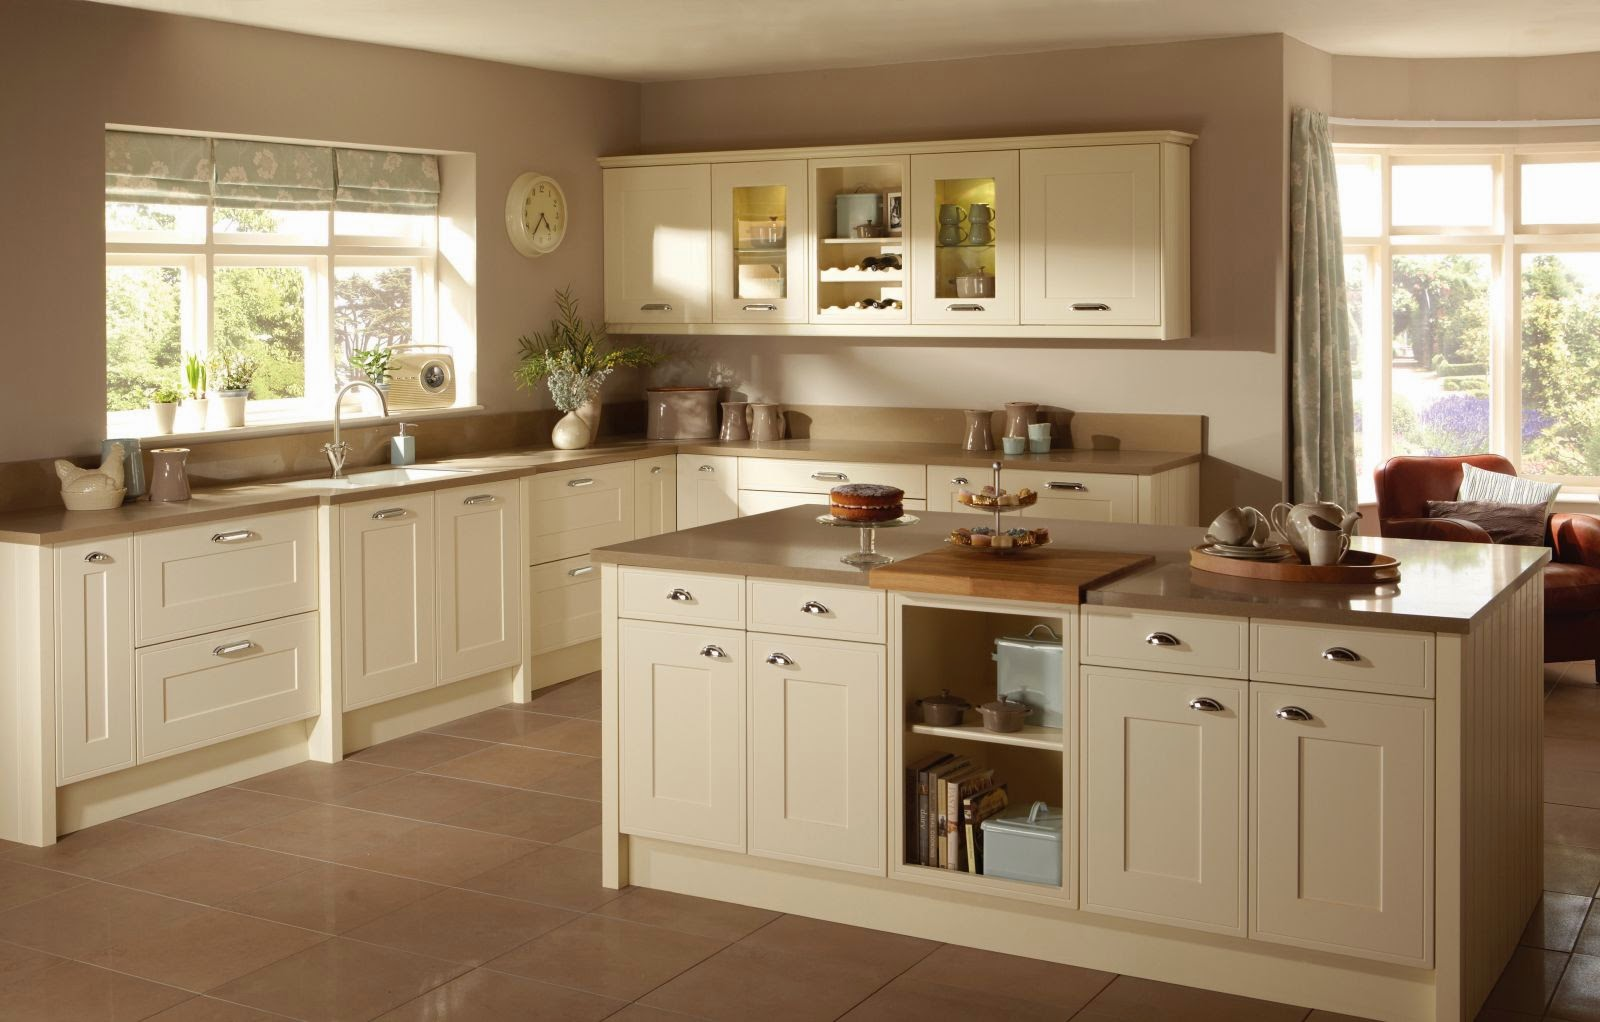 cream kitchen what colour tiles id 233 e pour r 233 nover cuisine rustique 8500